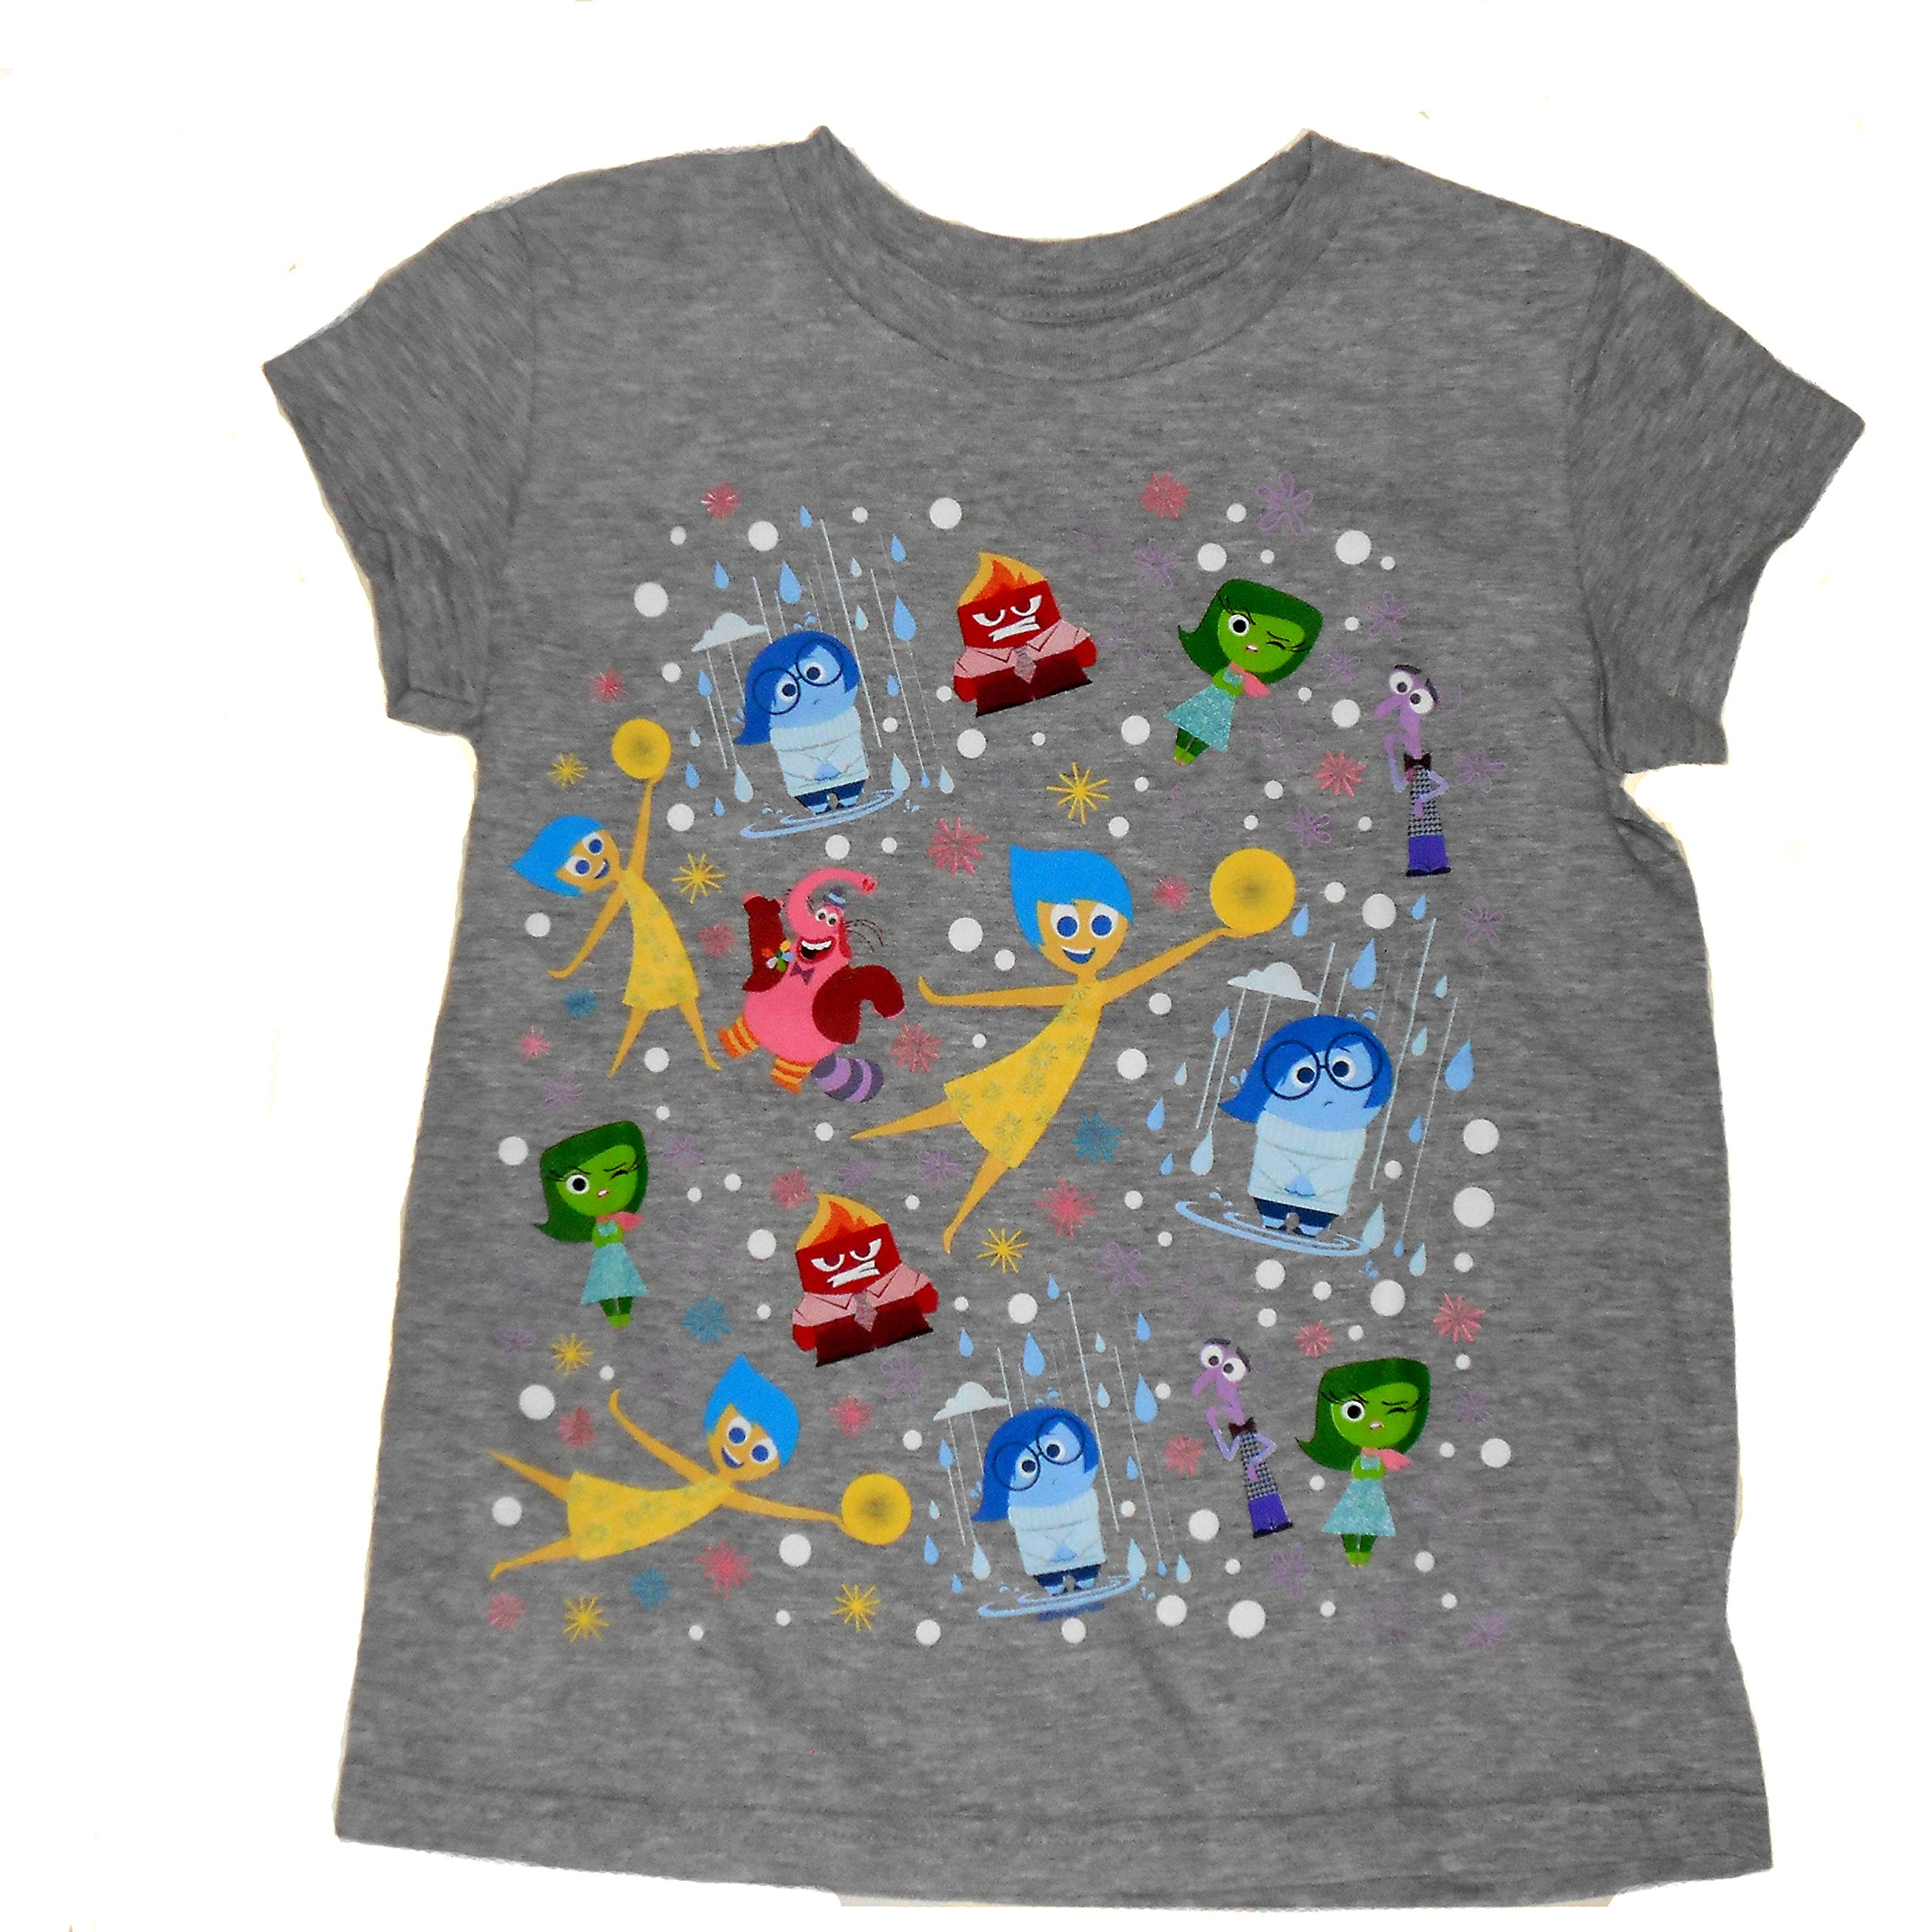 Disney Pixar Girls Inside Out Character T-Shirt - features Sadness, Joy, Disgust, Fear, Anger, and Bing Bong (the imaginary friend)